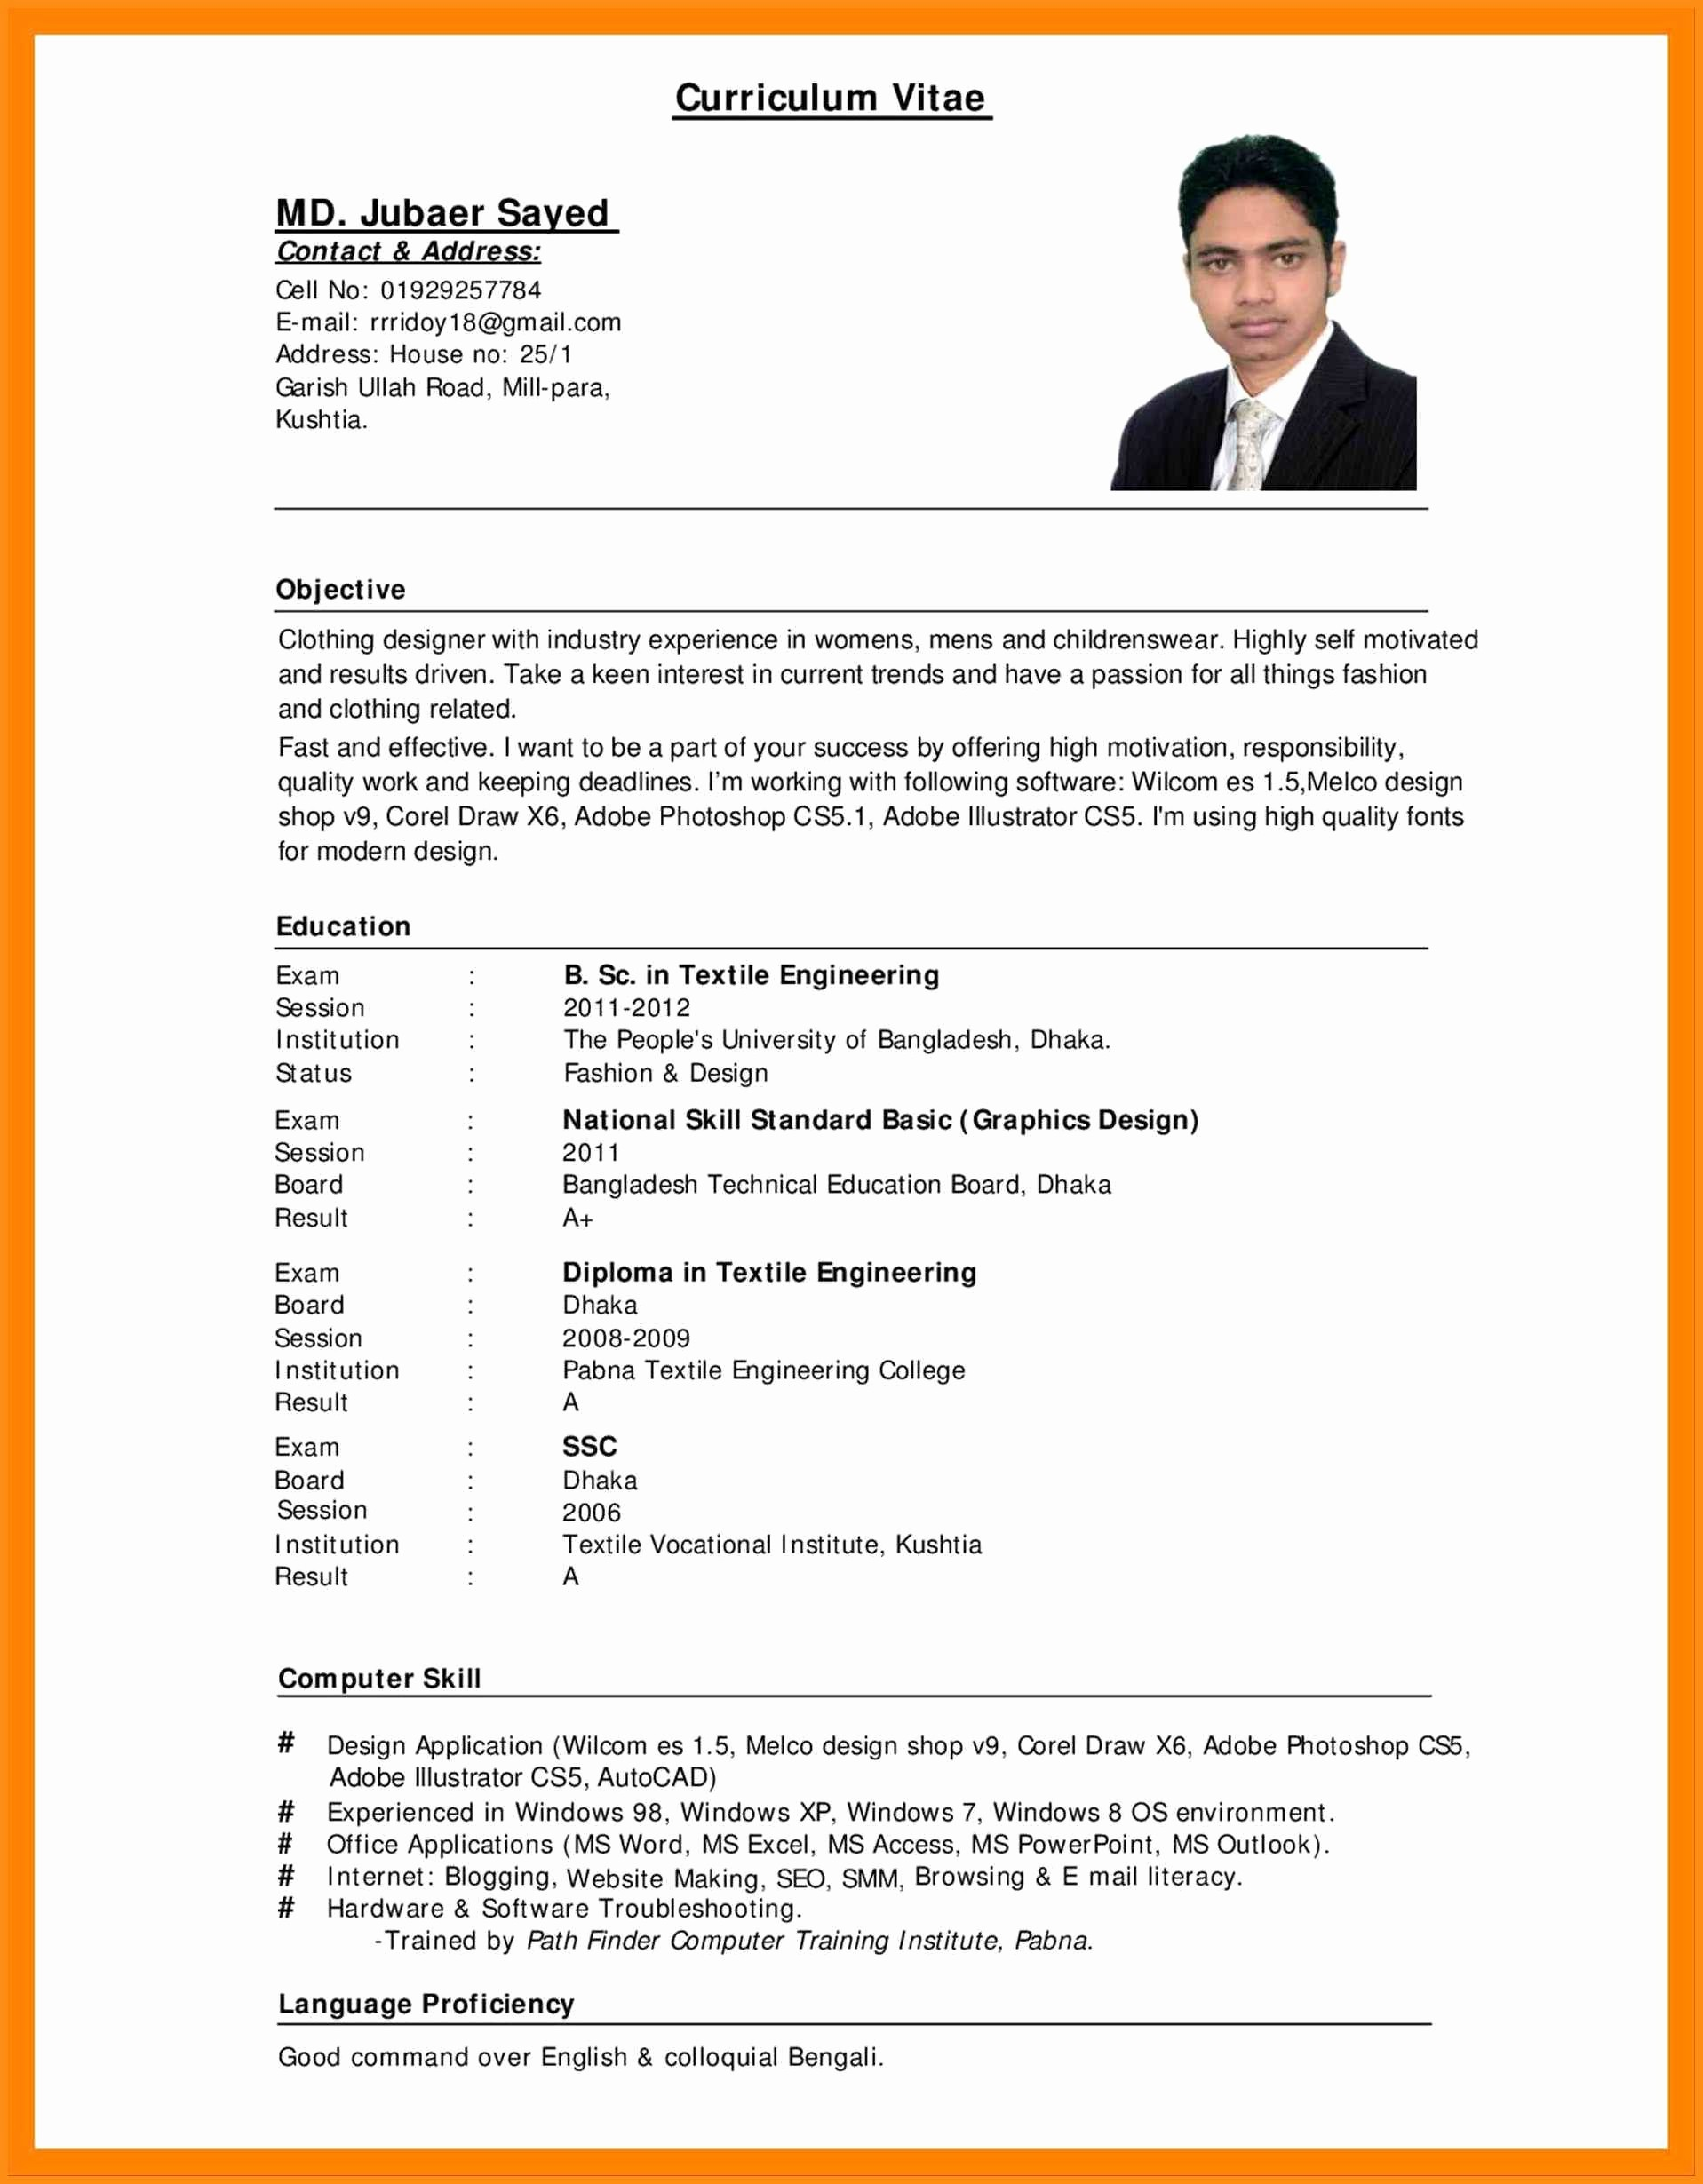 Resume format In Ms Word Lovely 12 Curriculum Vitae Word